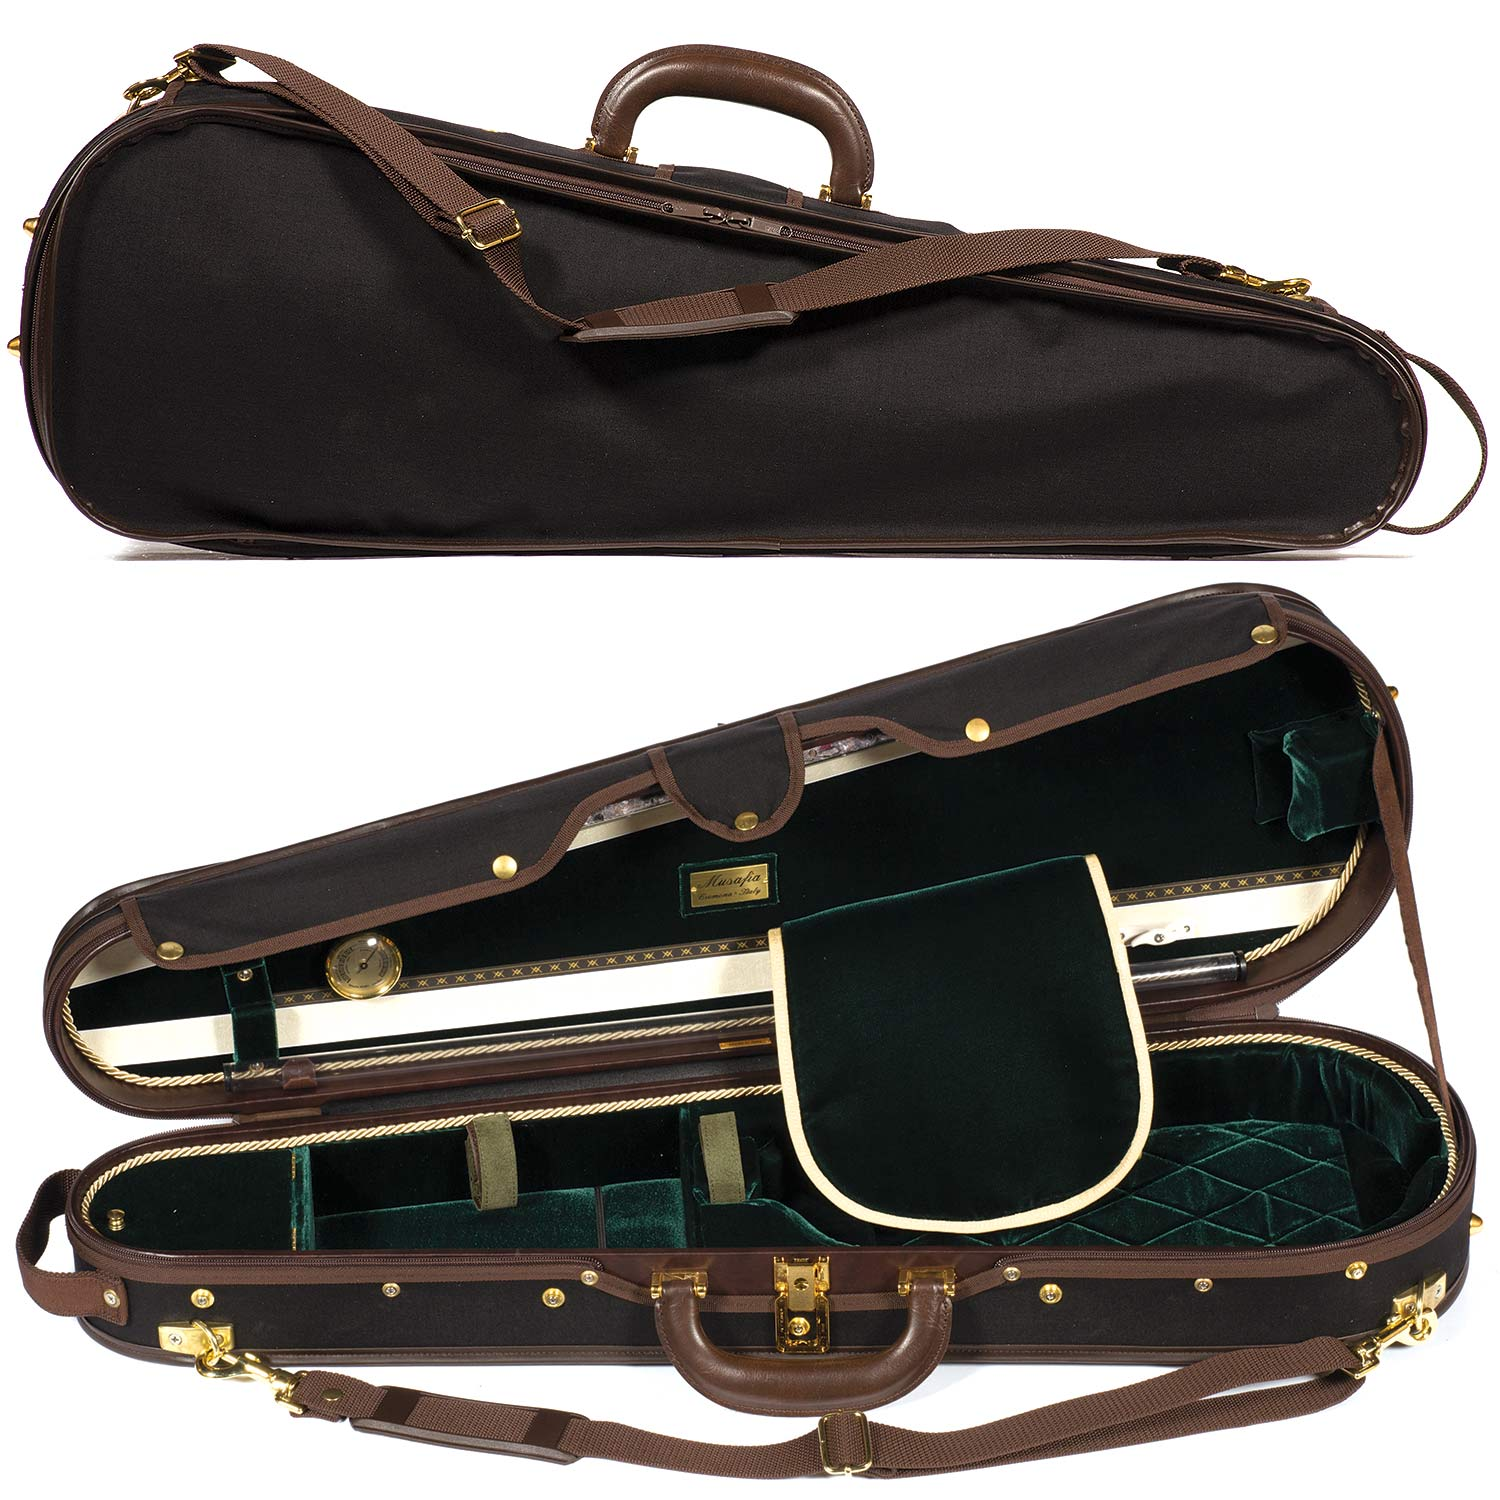 Musafia S3011 Luxury Dart Shaped Classic Violin Case With